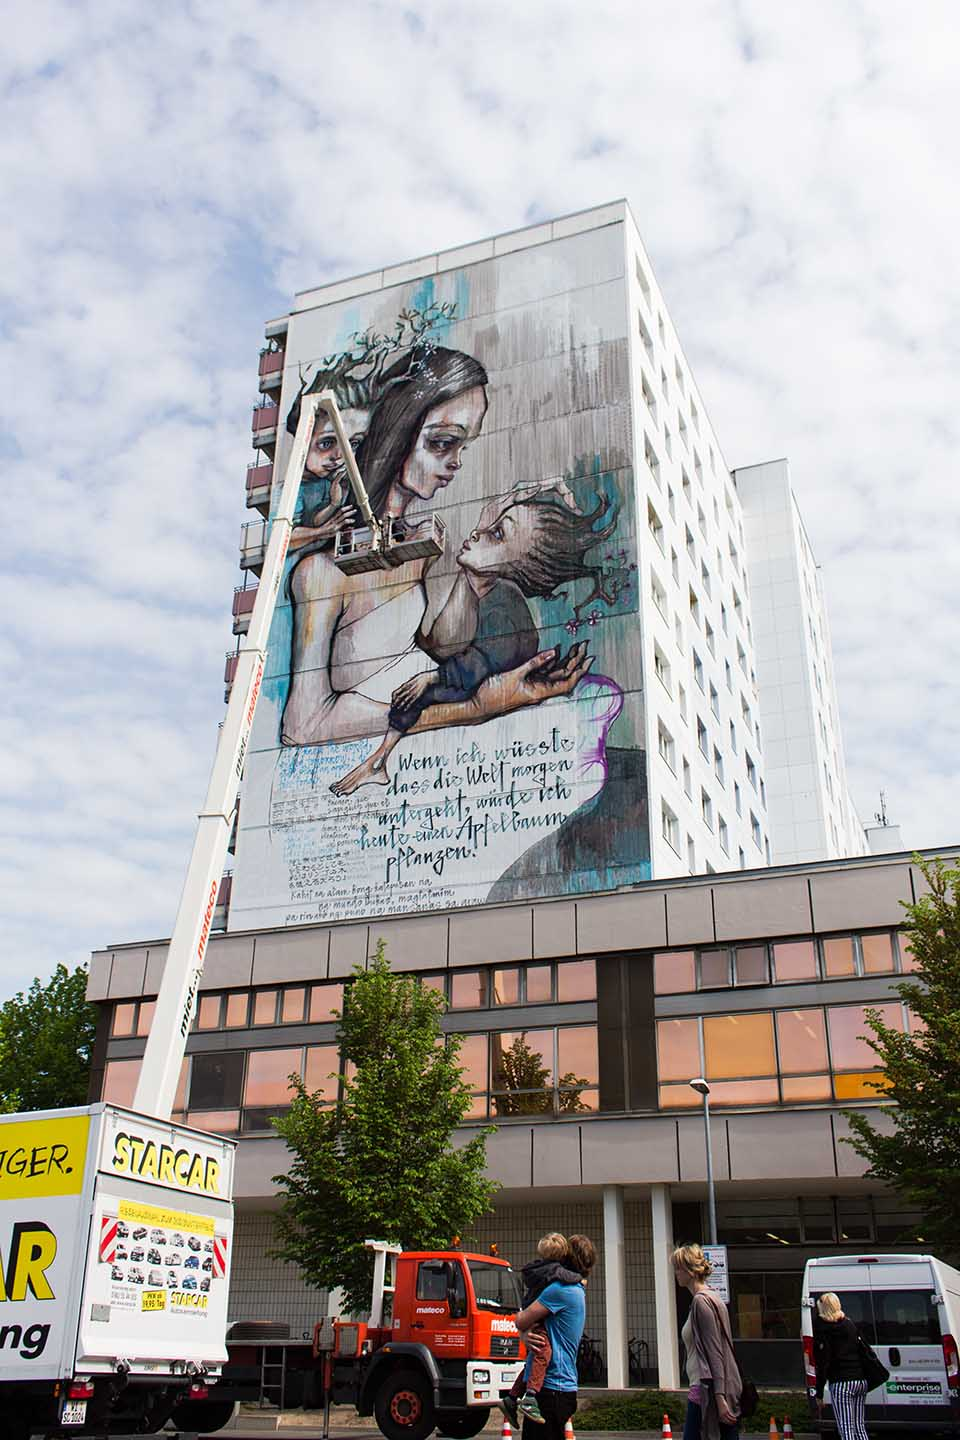 Herakut Street Art Mural in Berlin